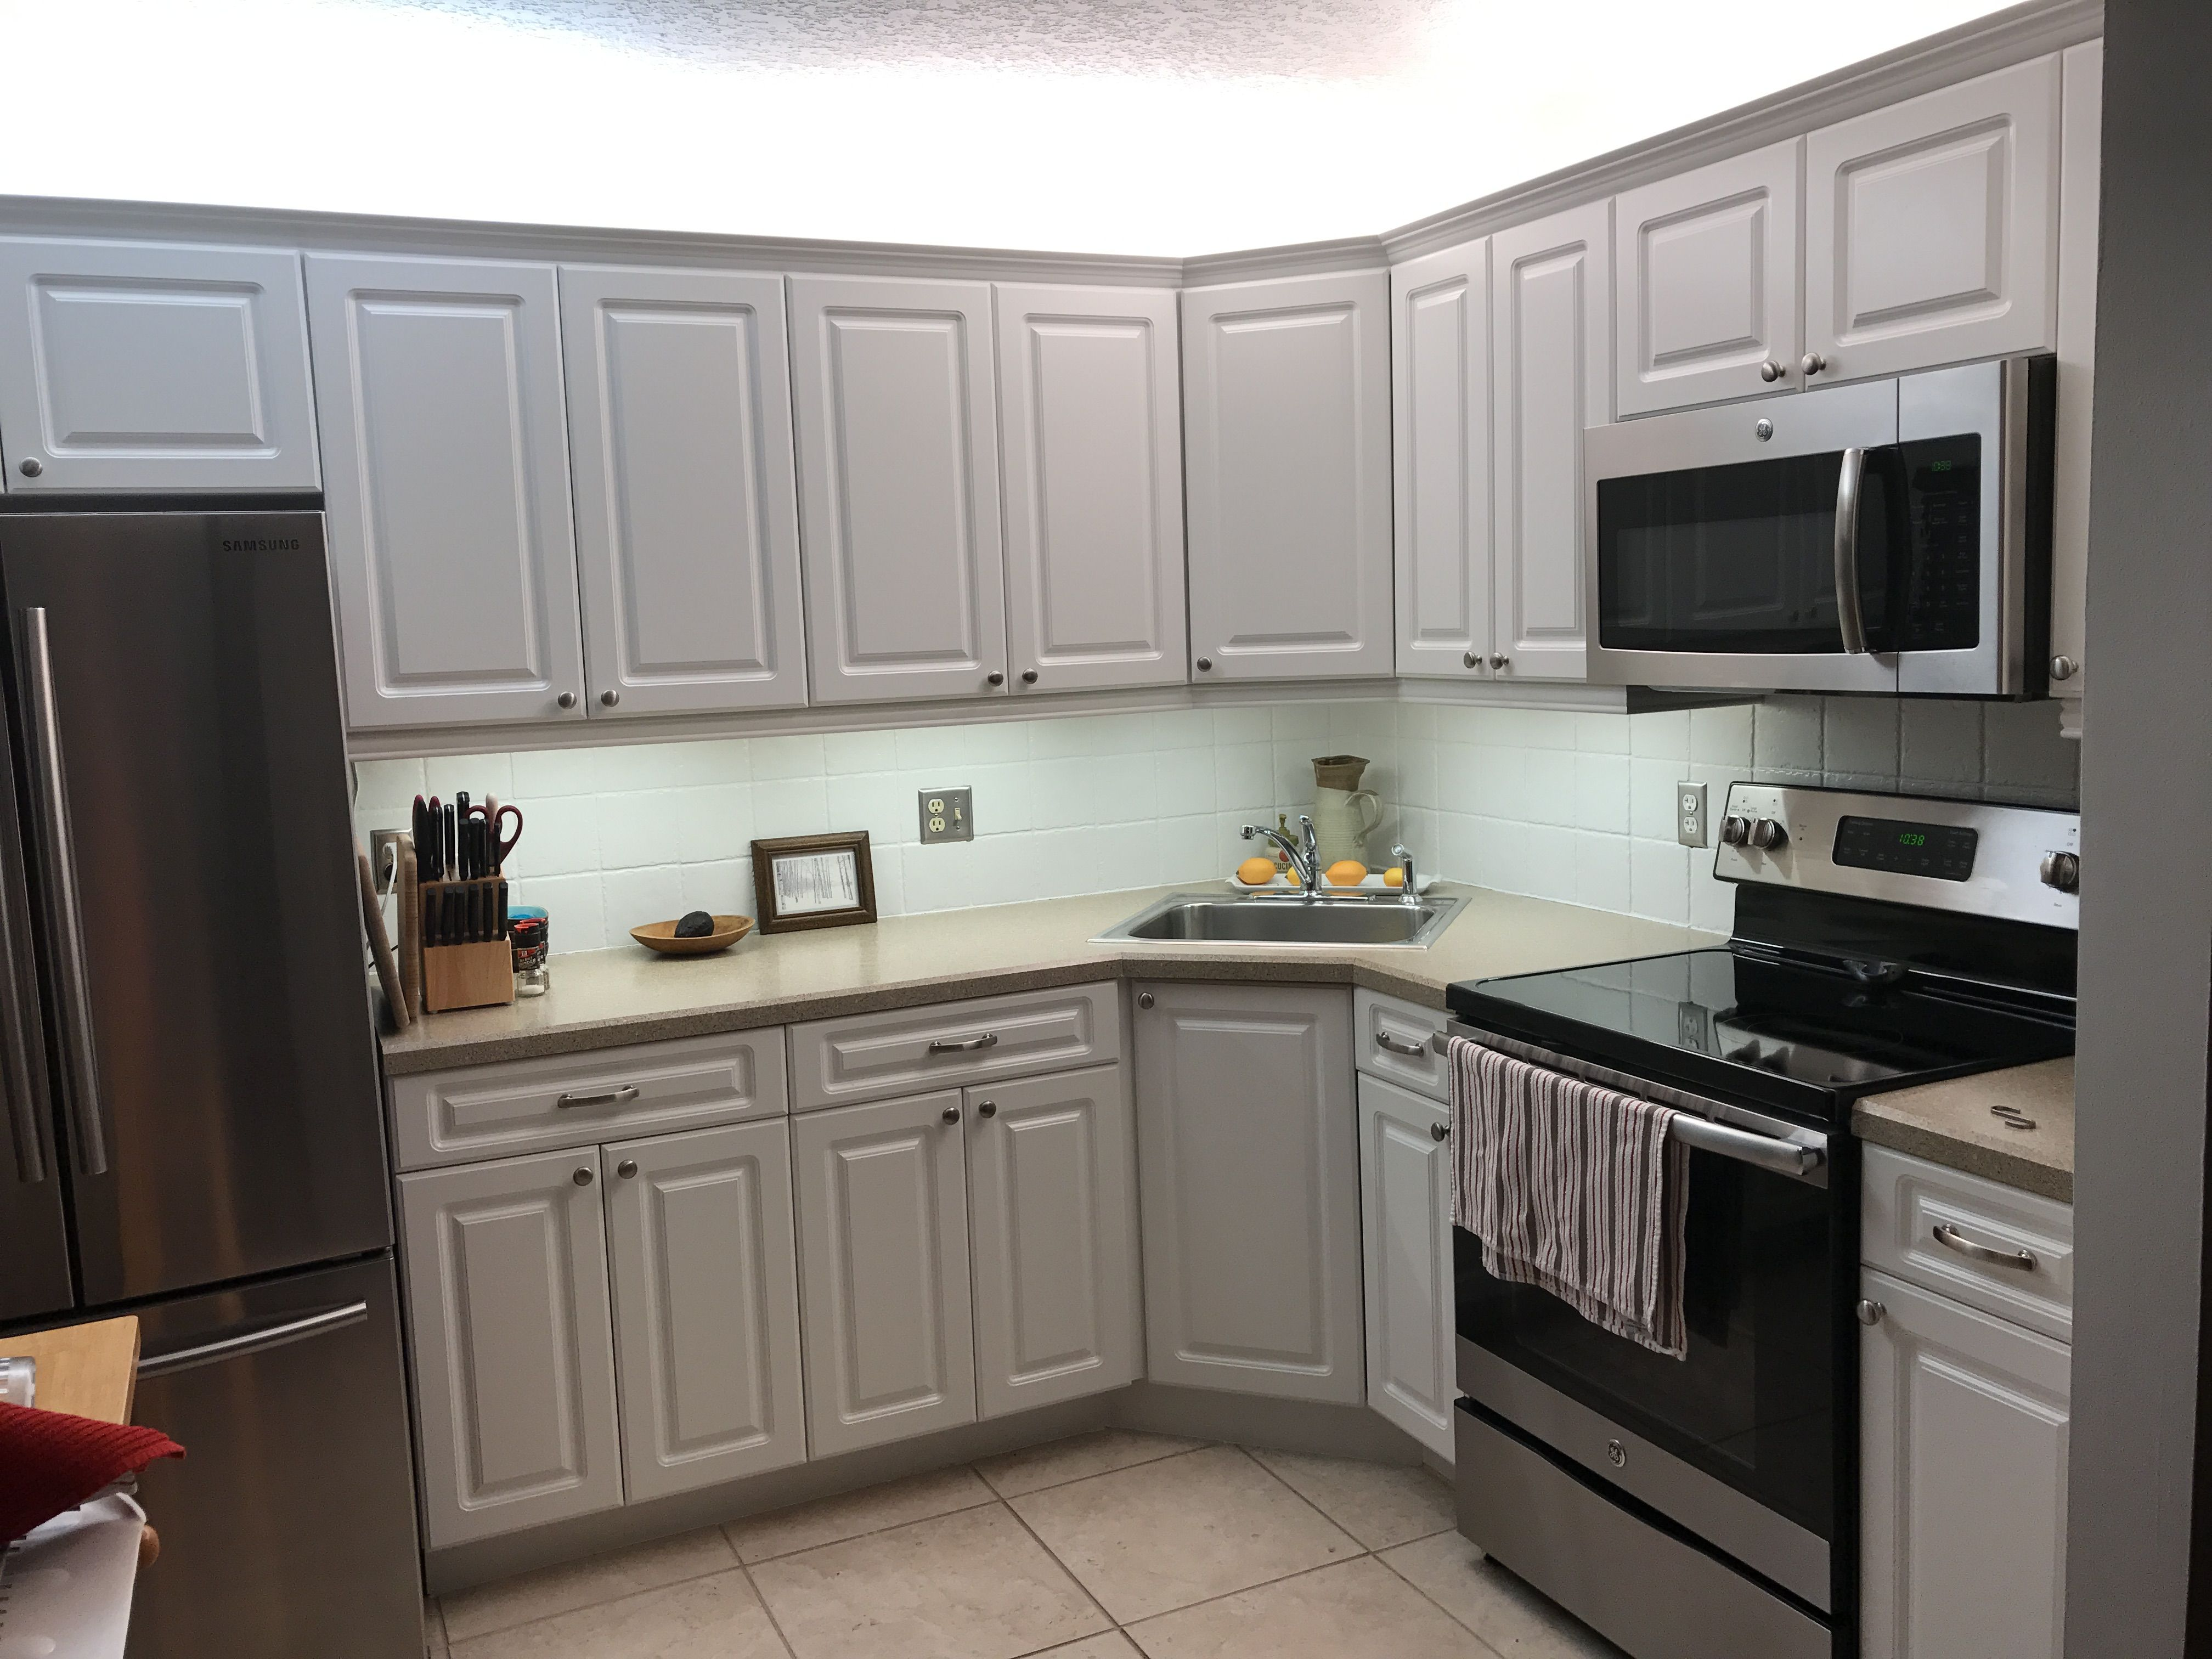 Thermofoil bathroom vanities - I Hated My Thermofoil Cabinets That Were About 8 Years Old Hired A Painter